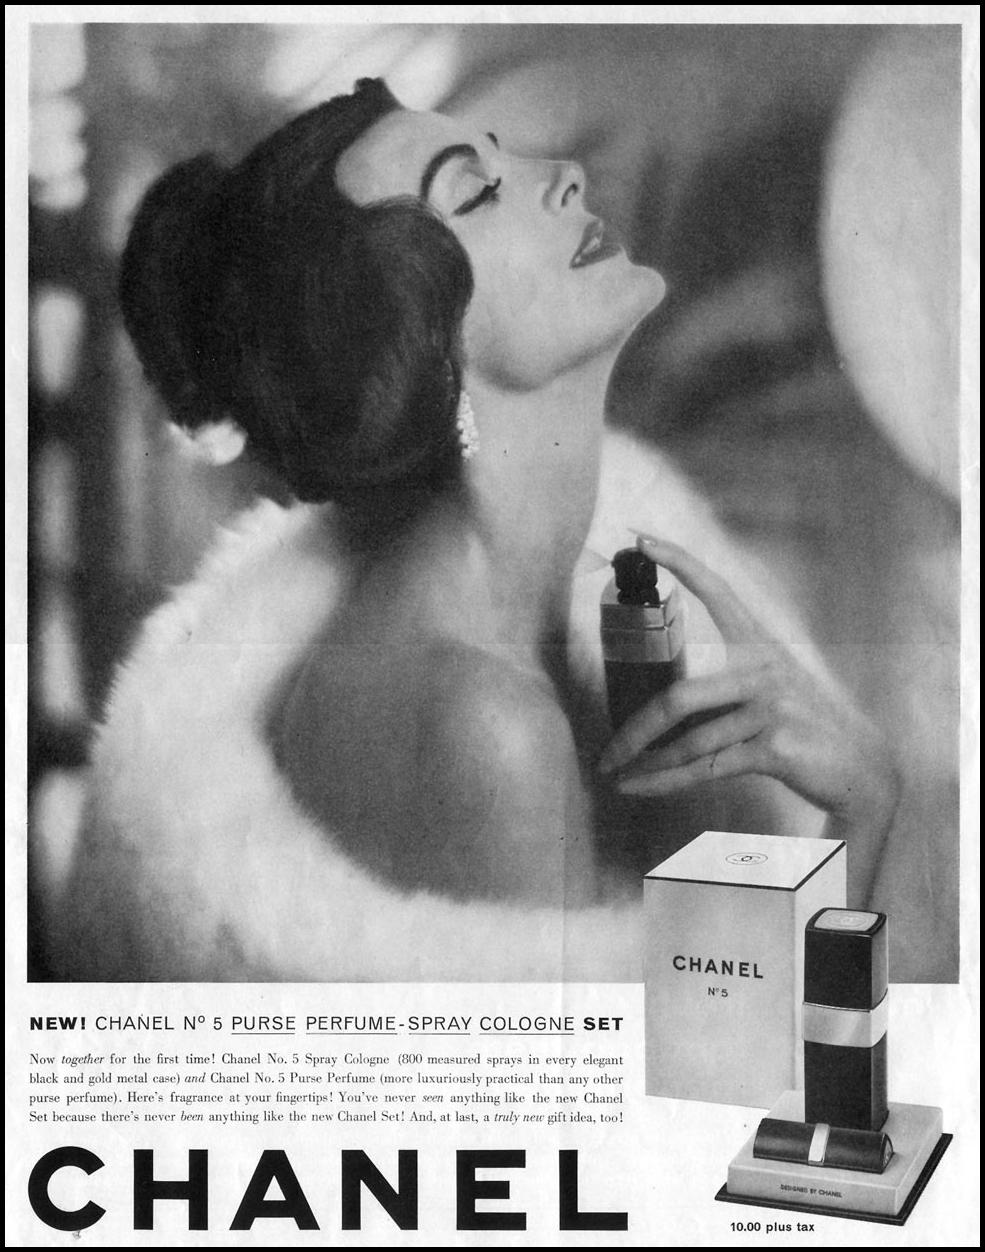 CHANEL NO. 5 PURSE PERFUME - SPRAY COLOGNE SET SATURDAY EVENING POST 05/02/1959 p. 12